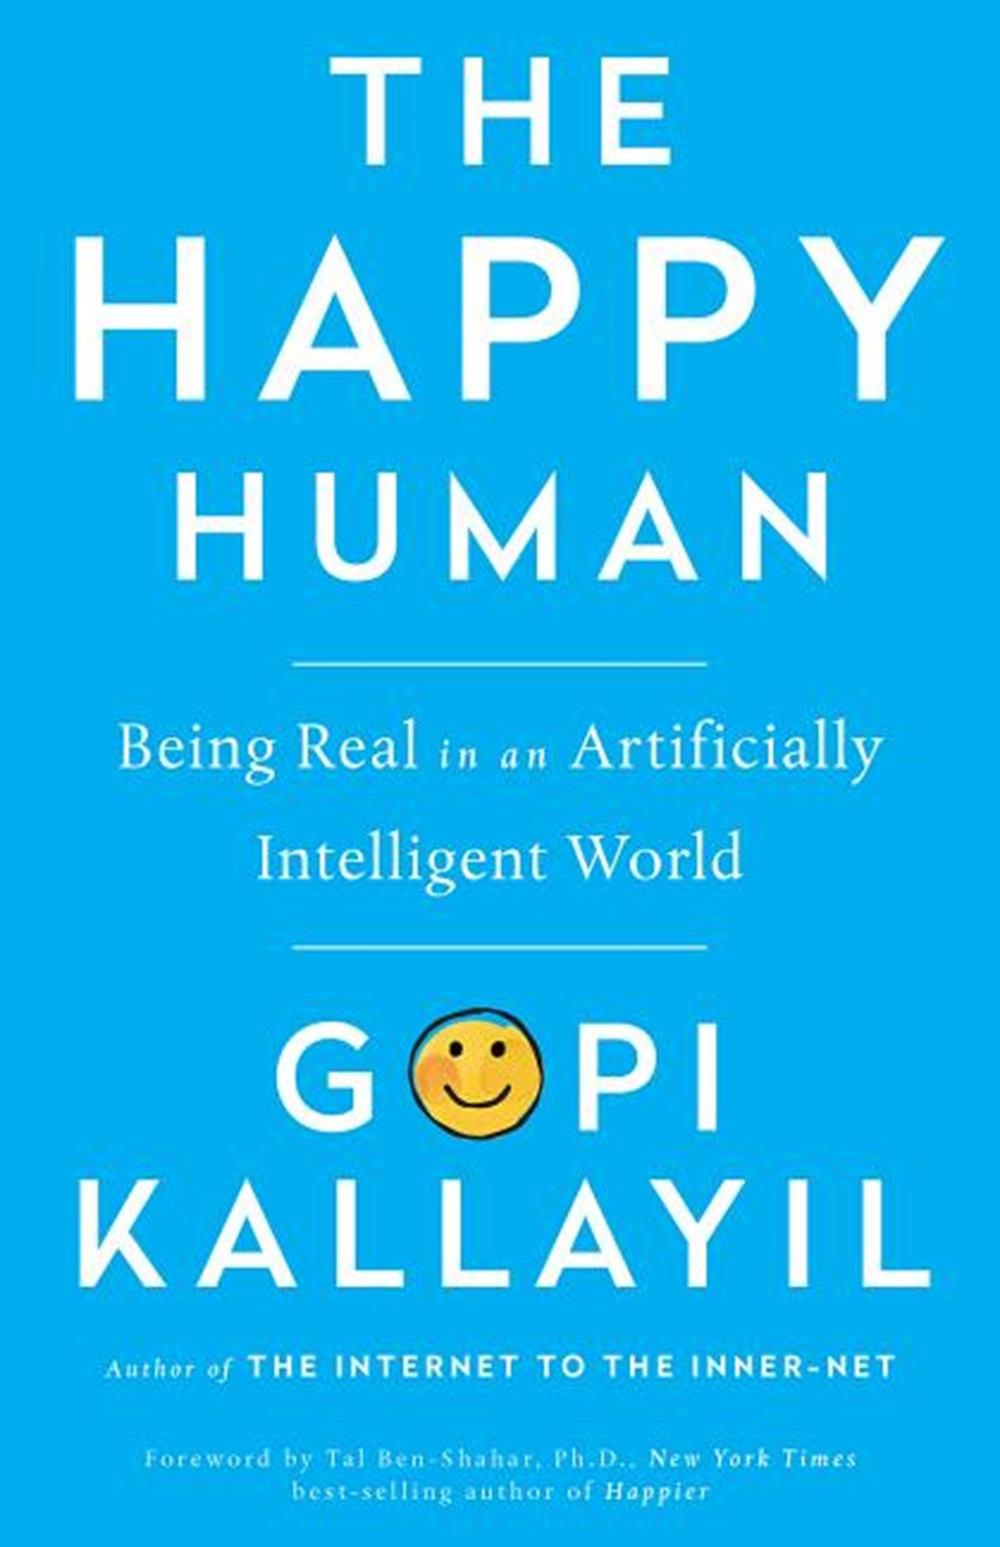 Happy Human Being Real in an Artificially Intelligent World